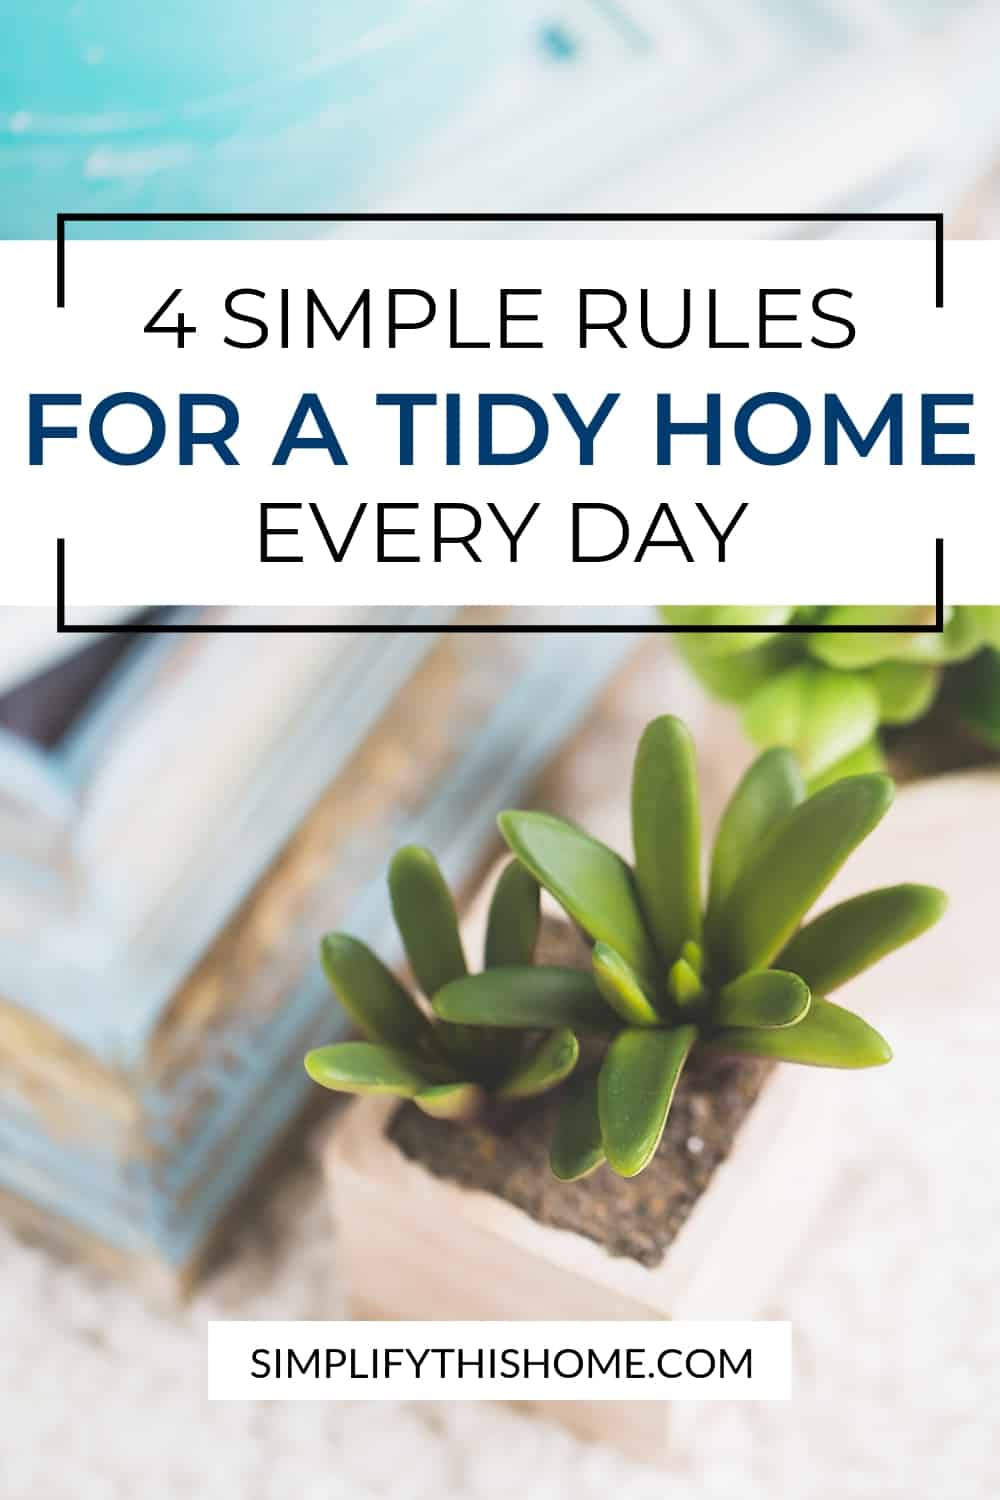 Four simple rules for a tidy home